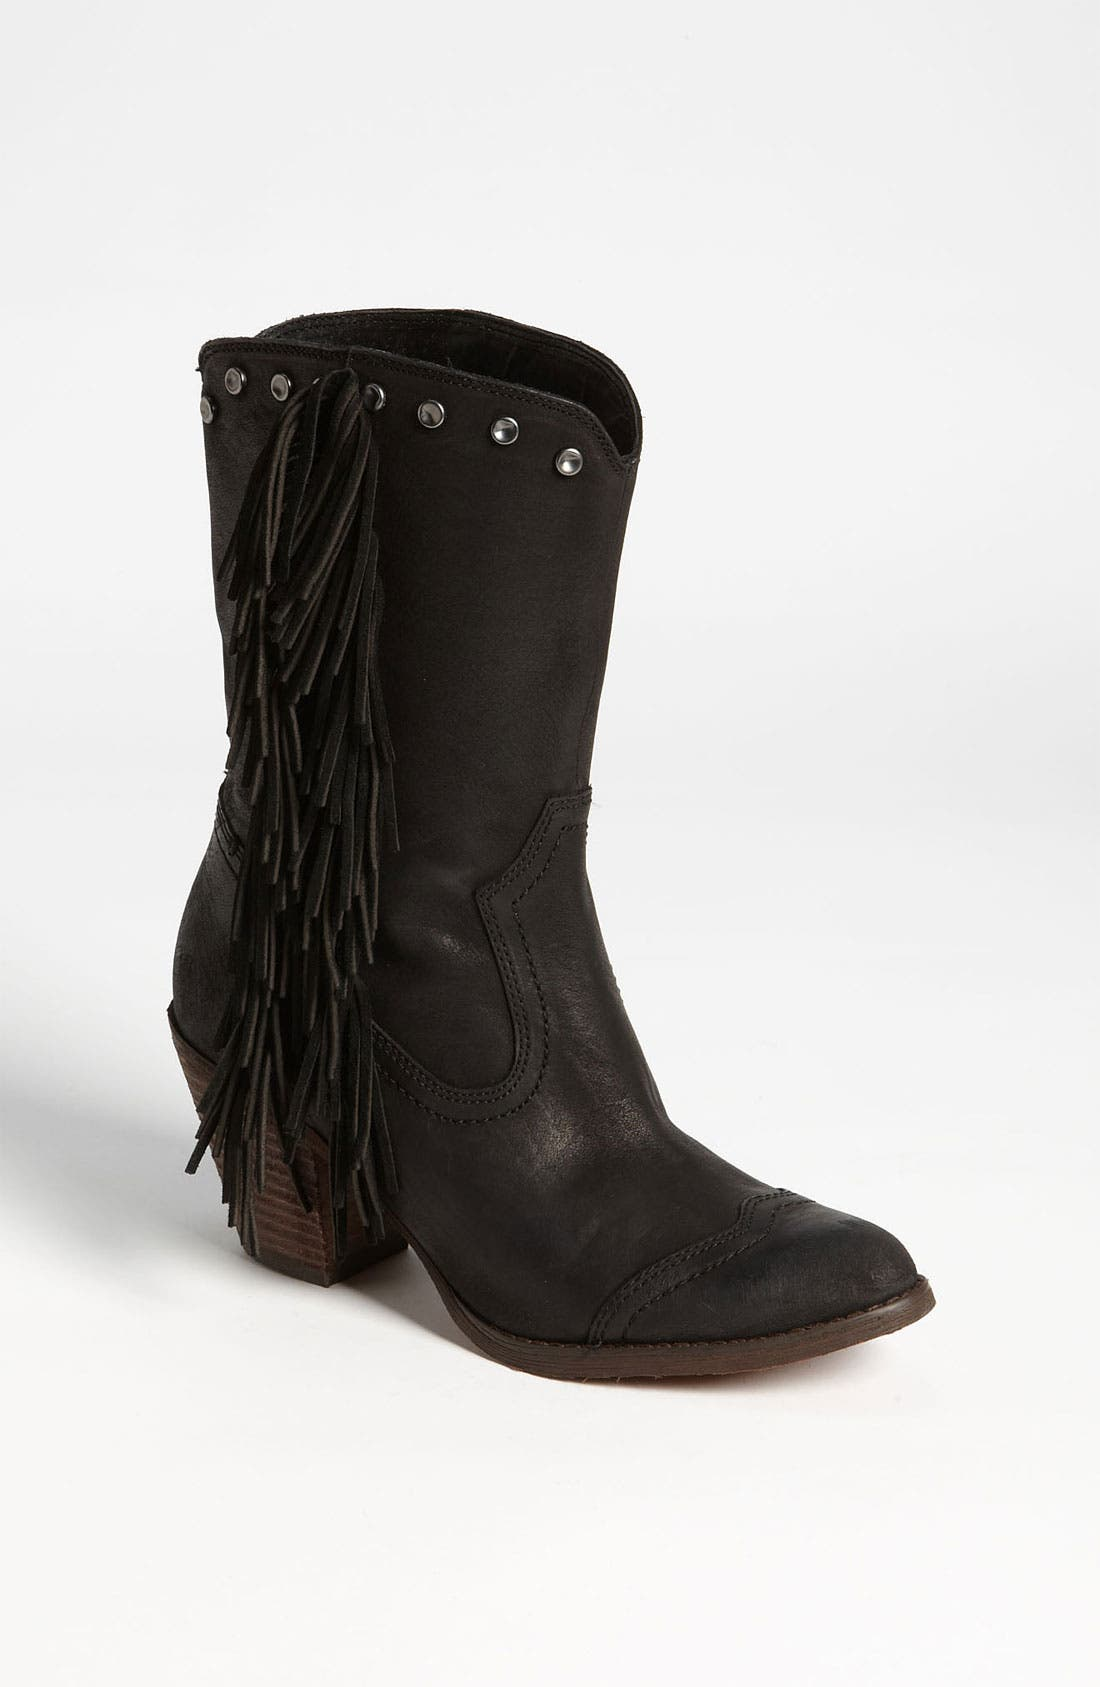 Alternate Image 1 Selected - Luxury Rebel 'Diego' Boot